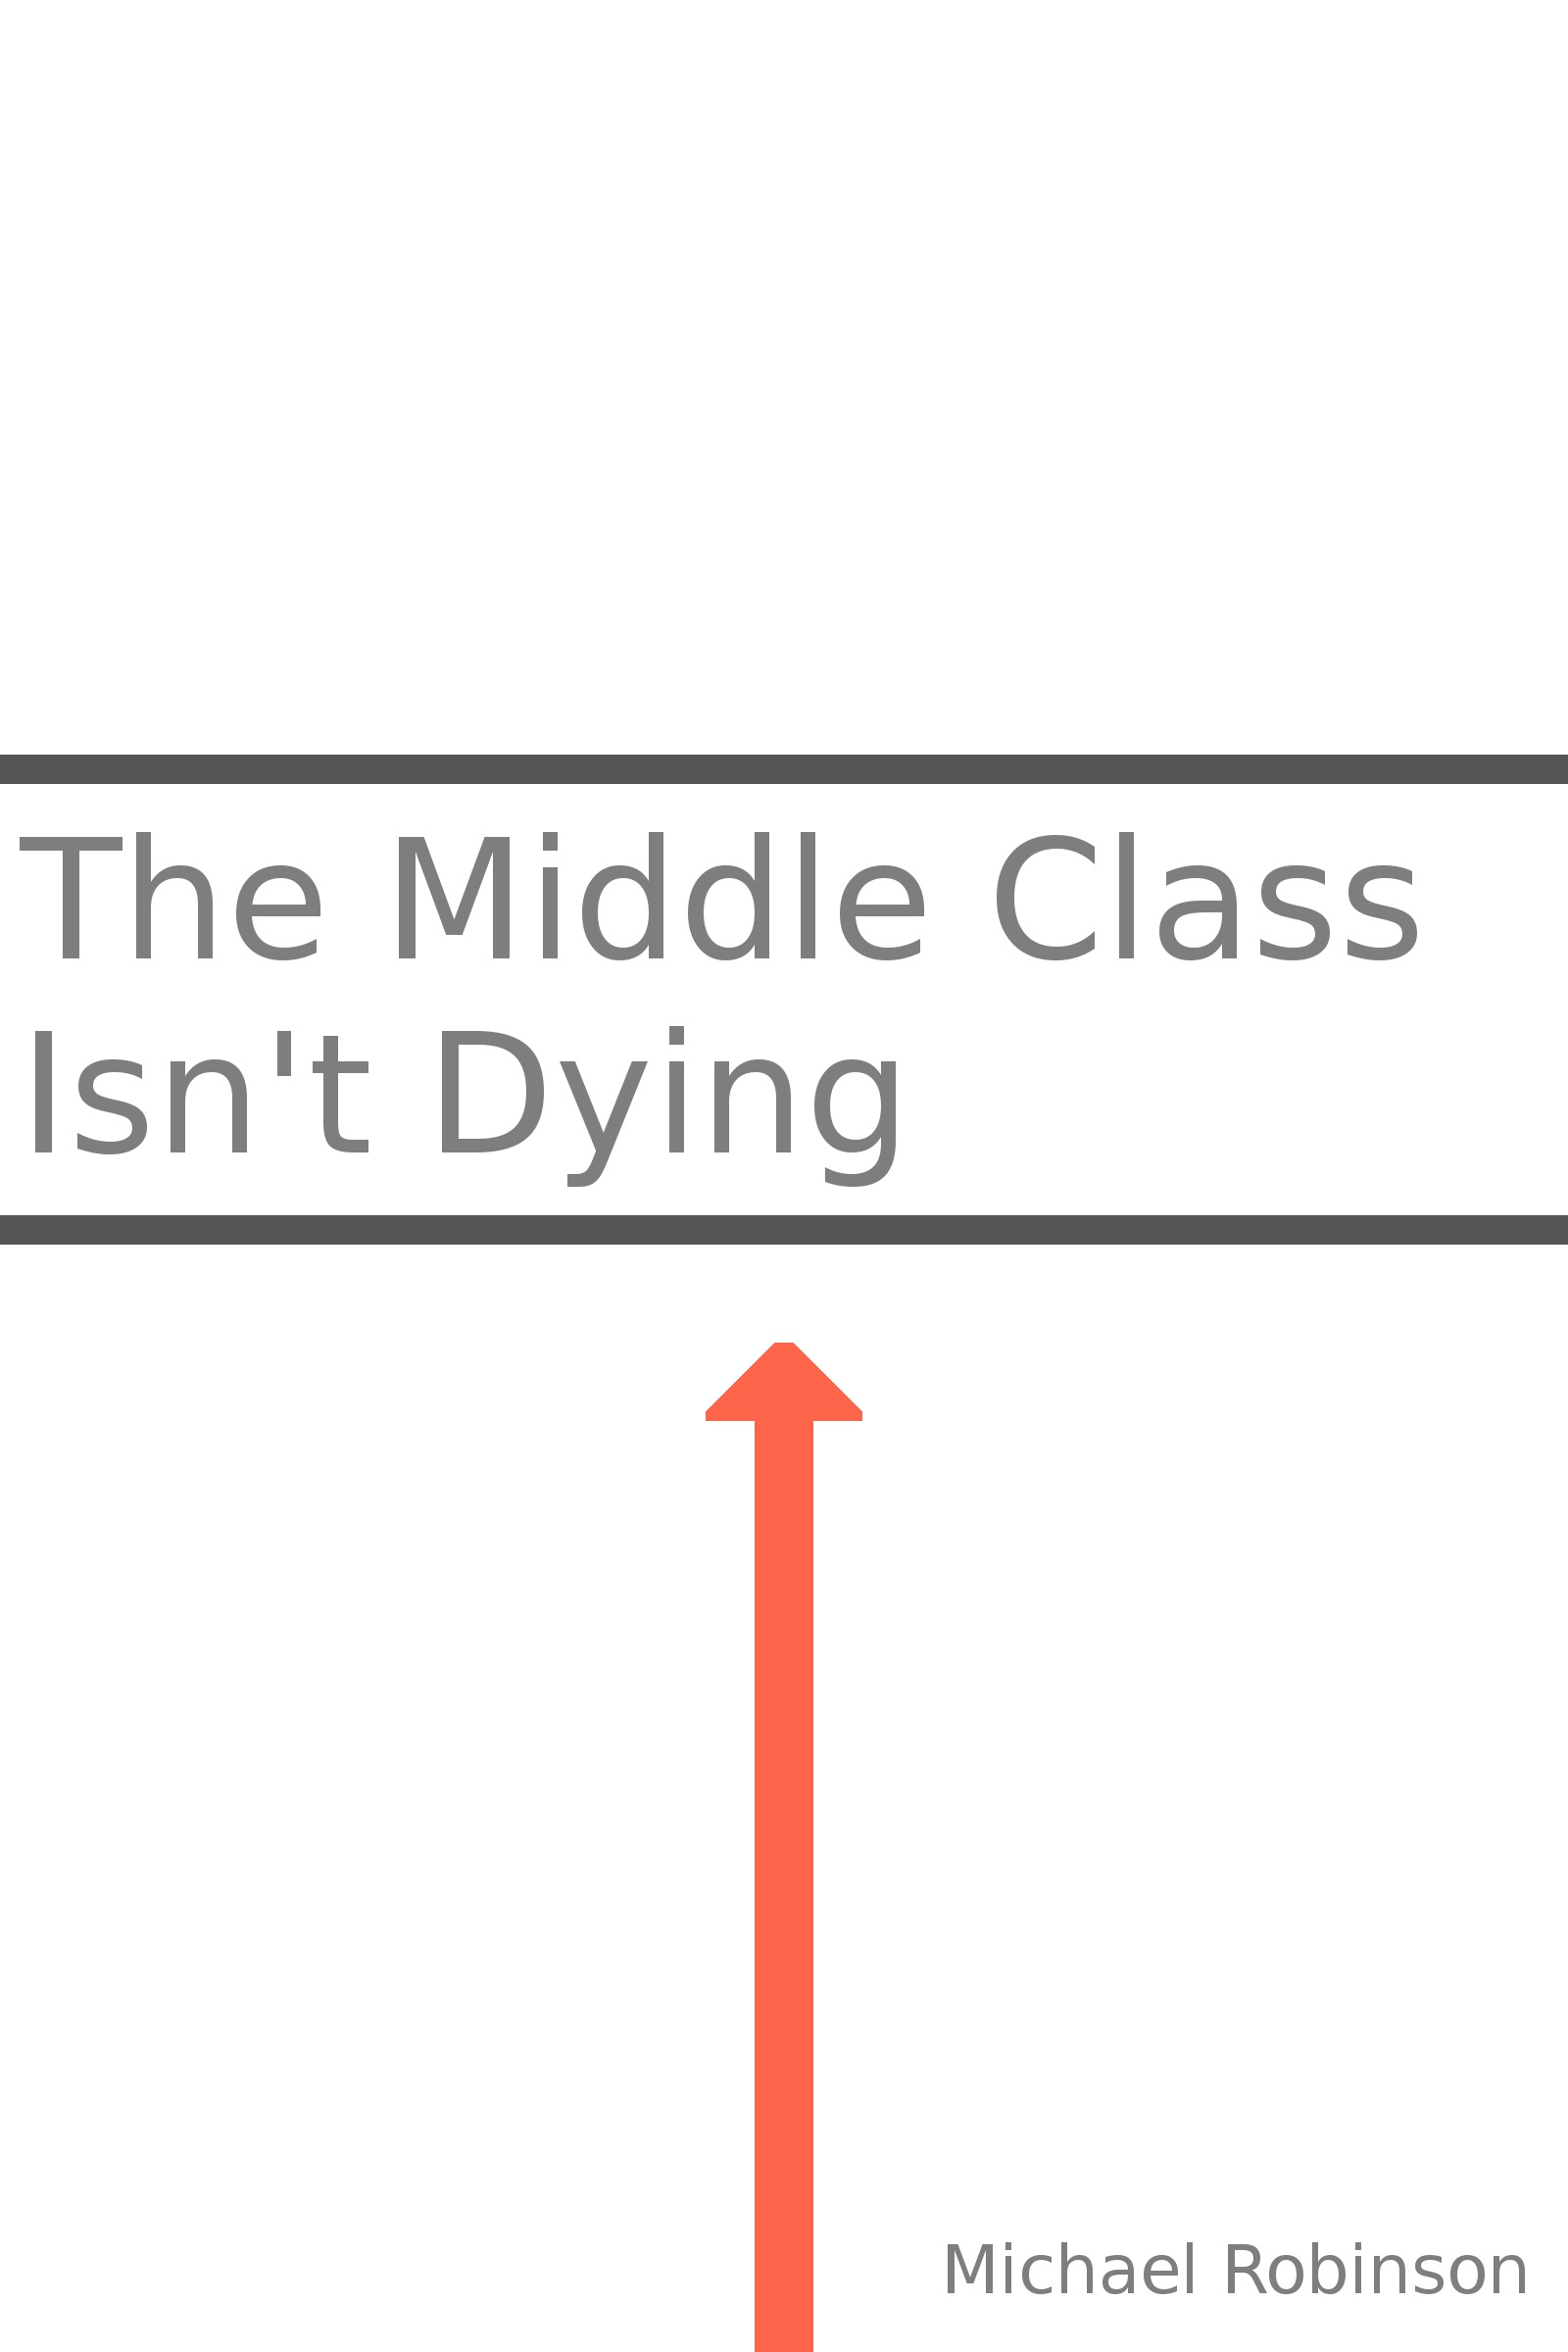 The Middle Class Isn't Dying